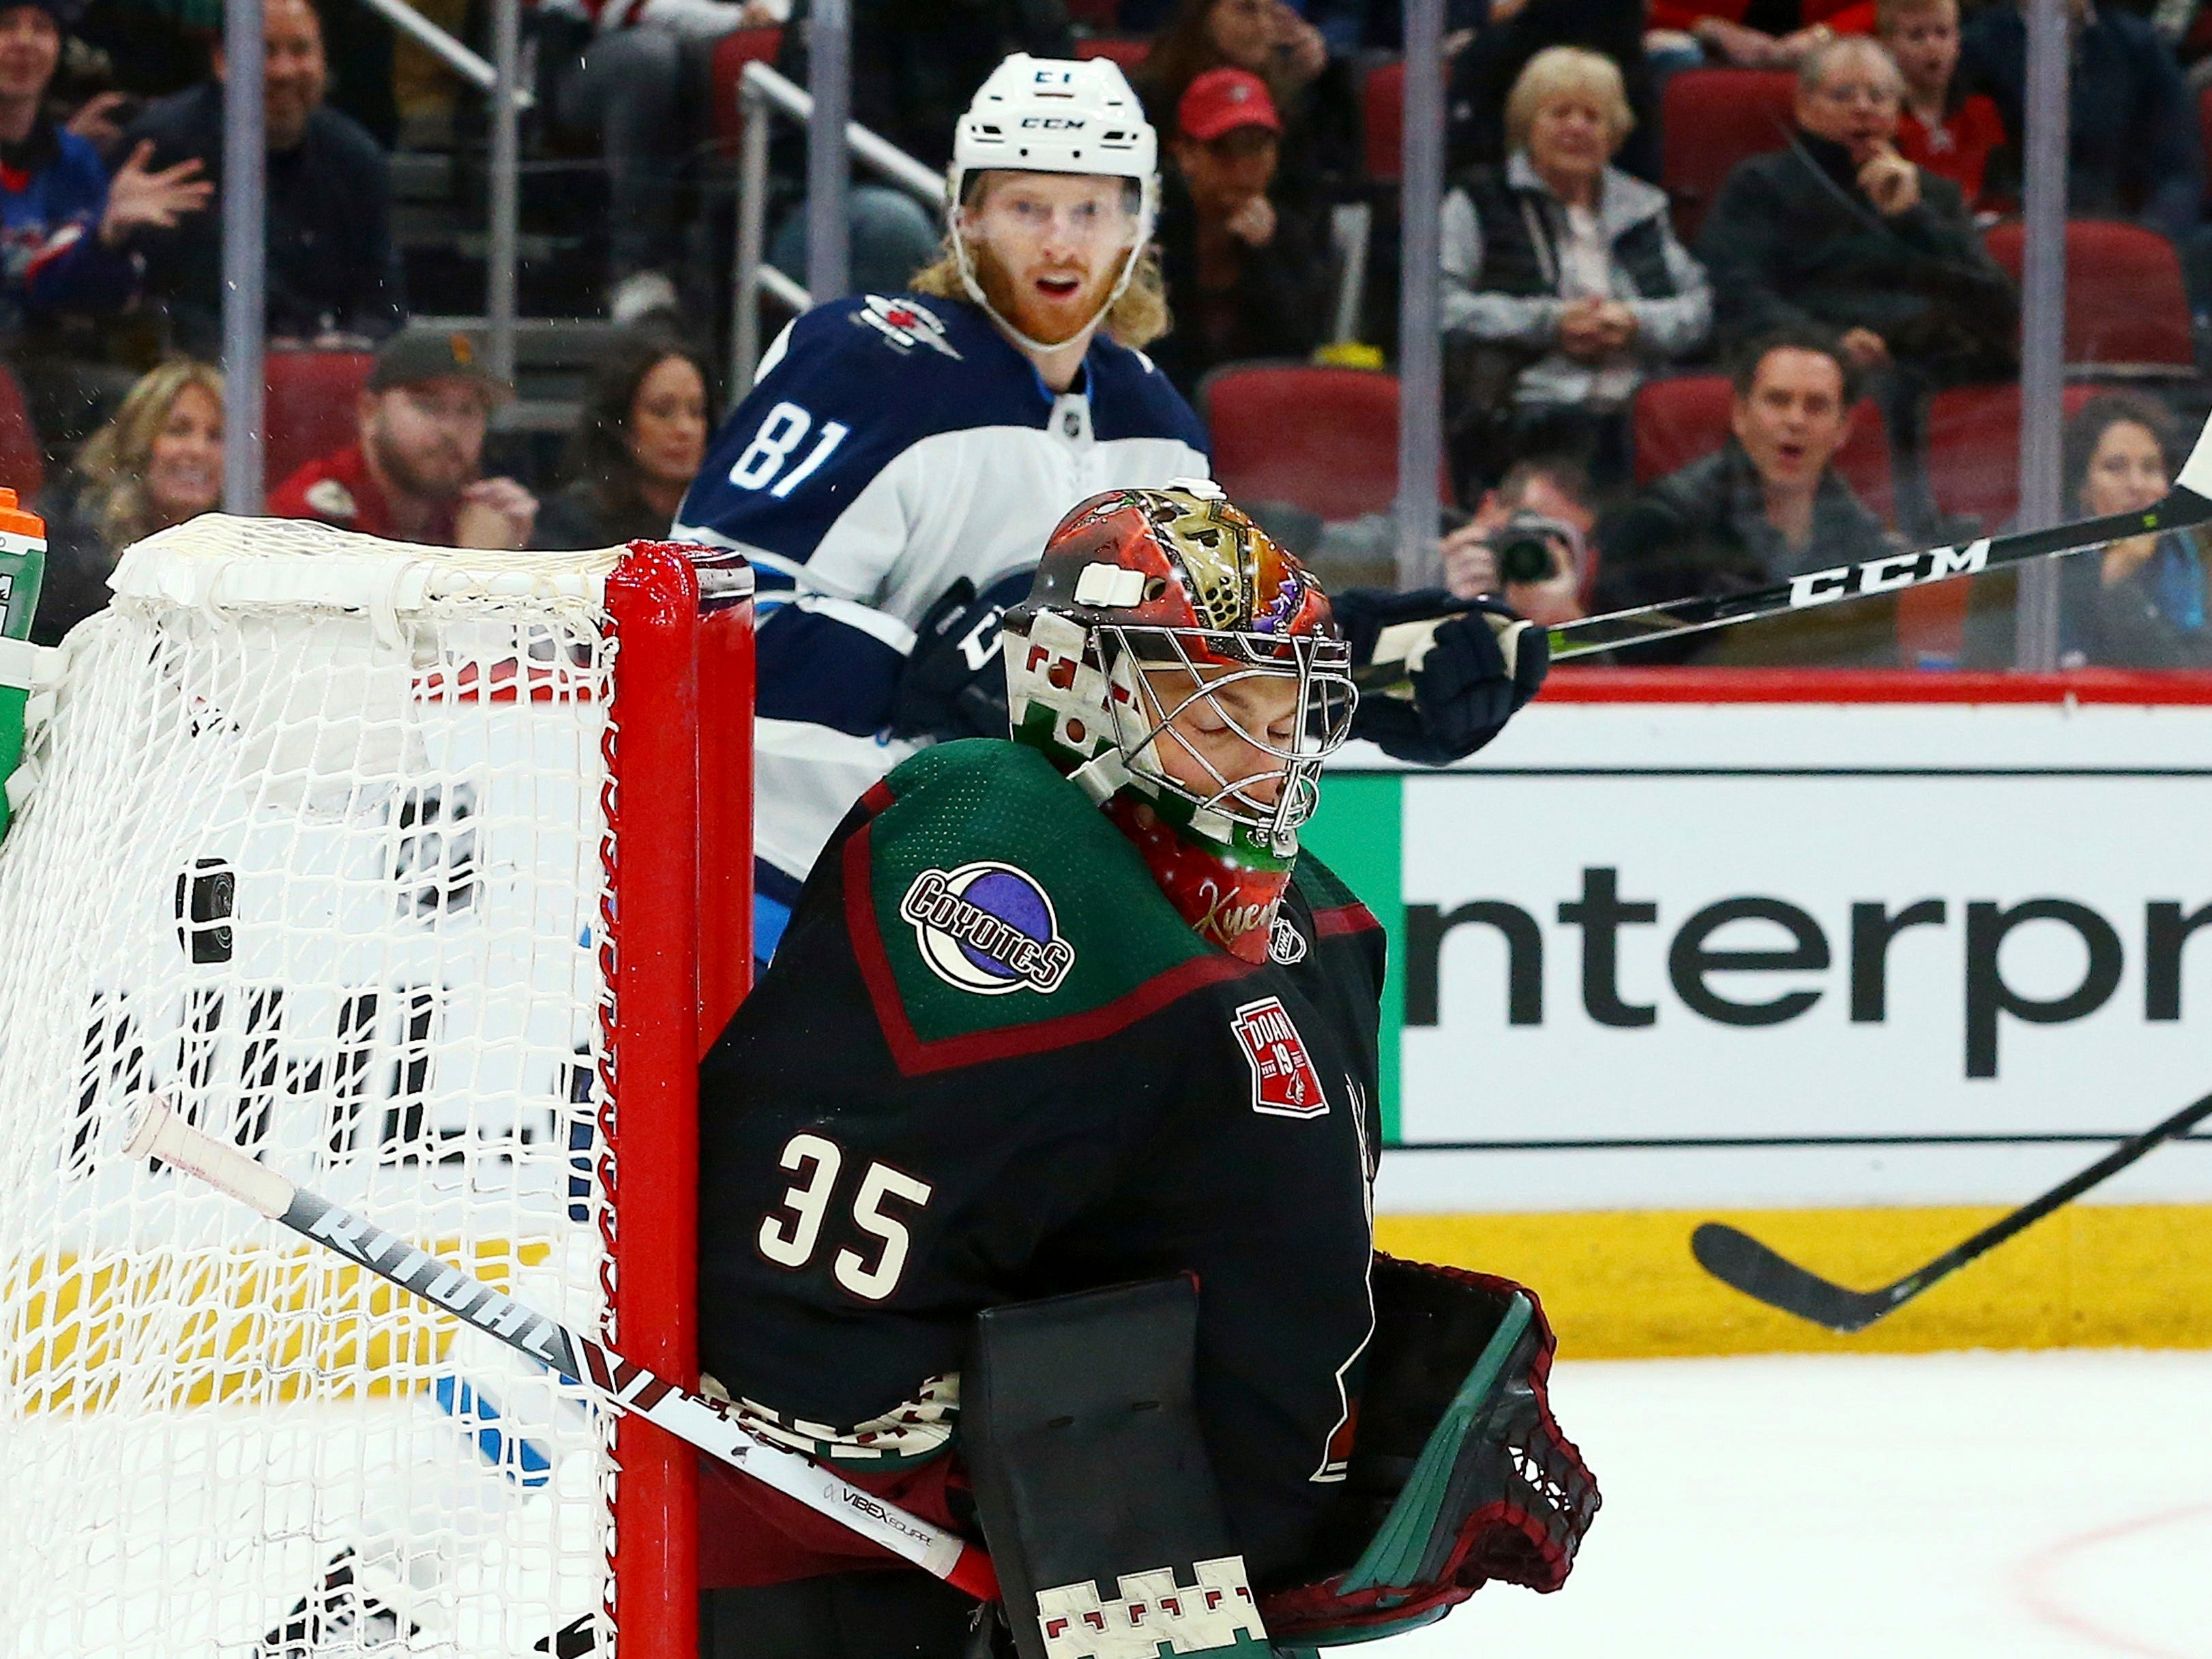 Arizona Coyotes goaltender Darcy Kuemper (35) gives up a goal to Winnipeg Jets' Patrik Laine as Jets left wing Kyle Connor (81) looks on during the first period of an NHL hockey game Sunday, Feb. 24, 2019, in Glendale, Ariz.